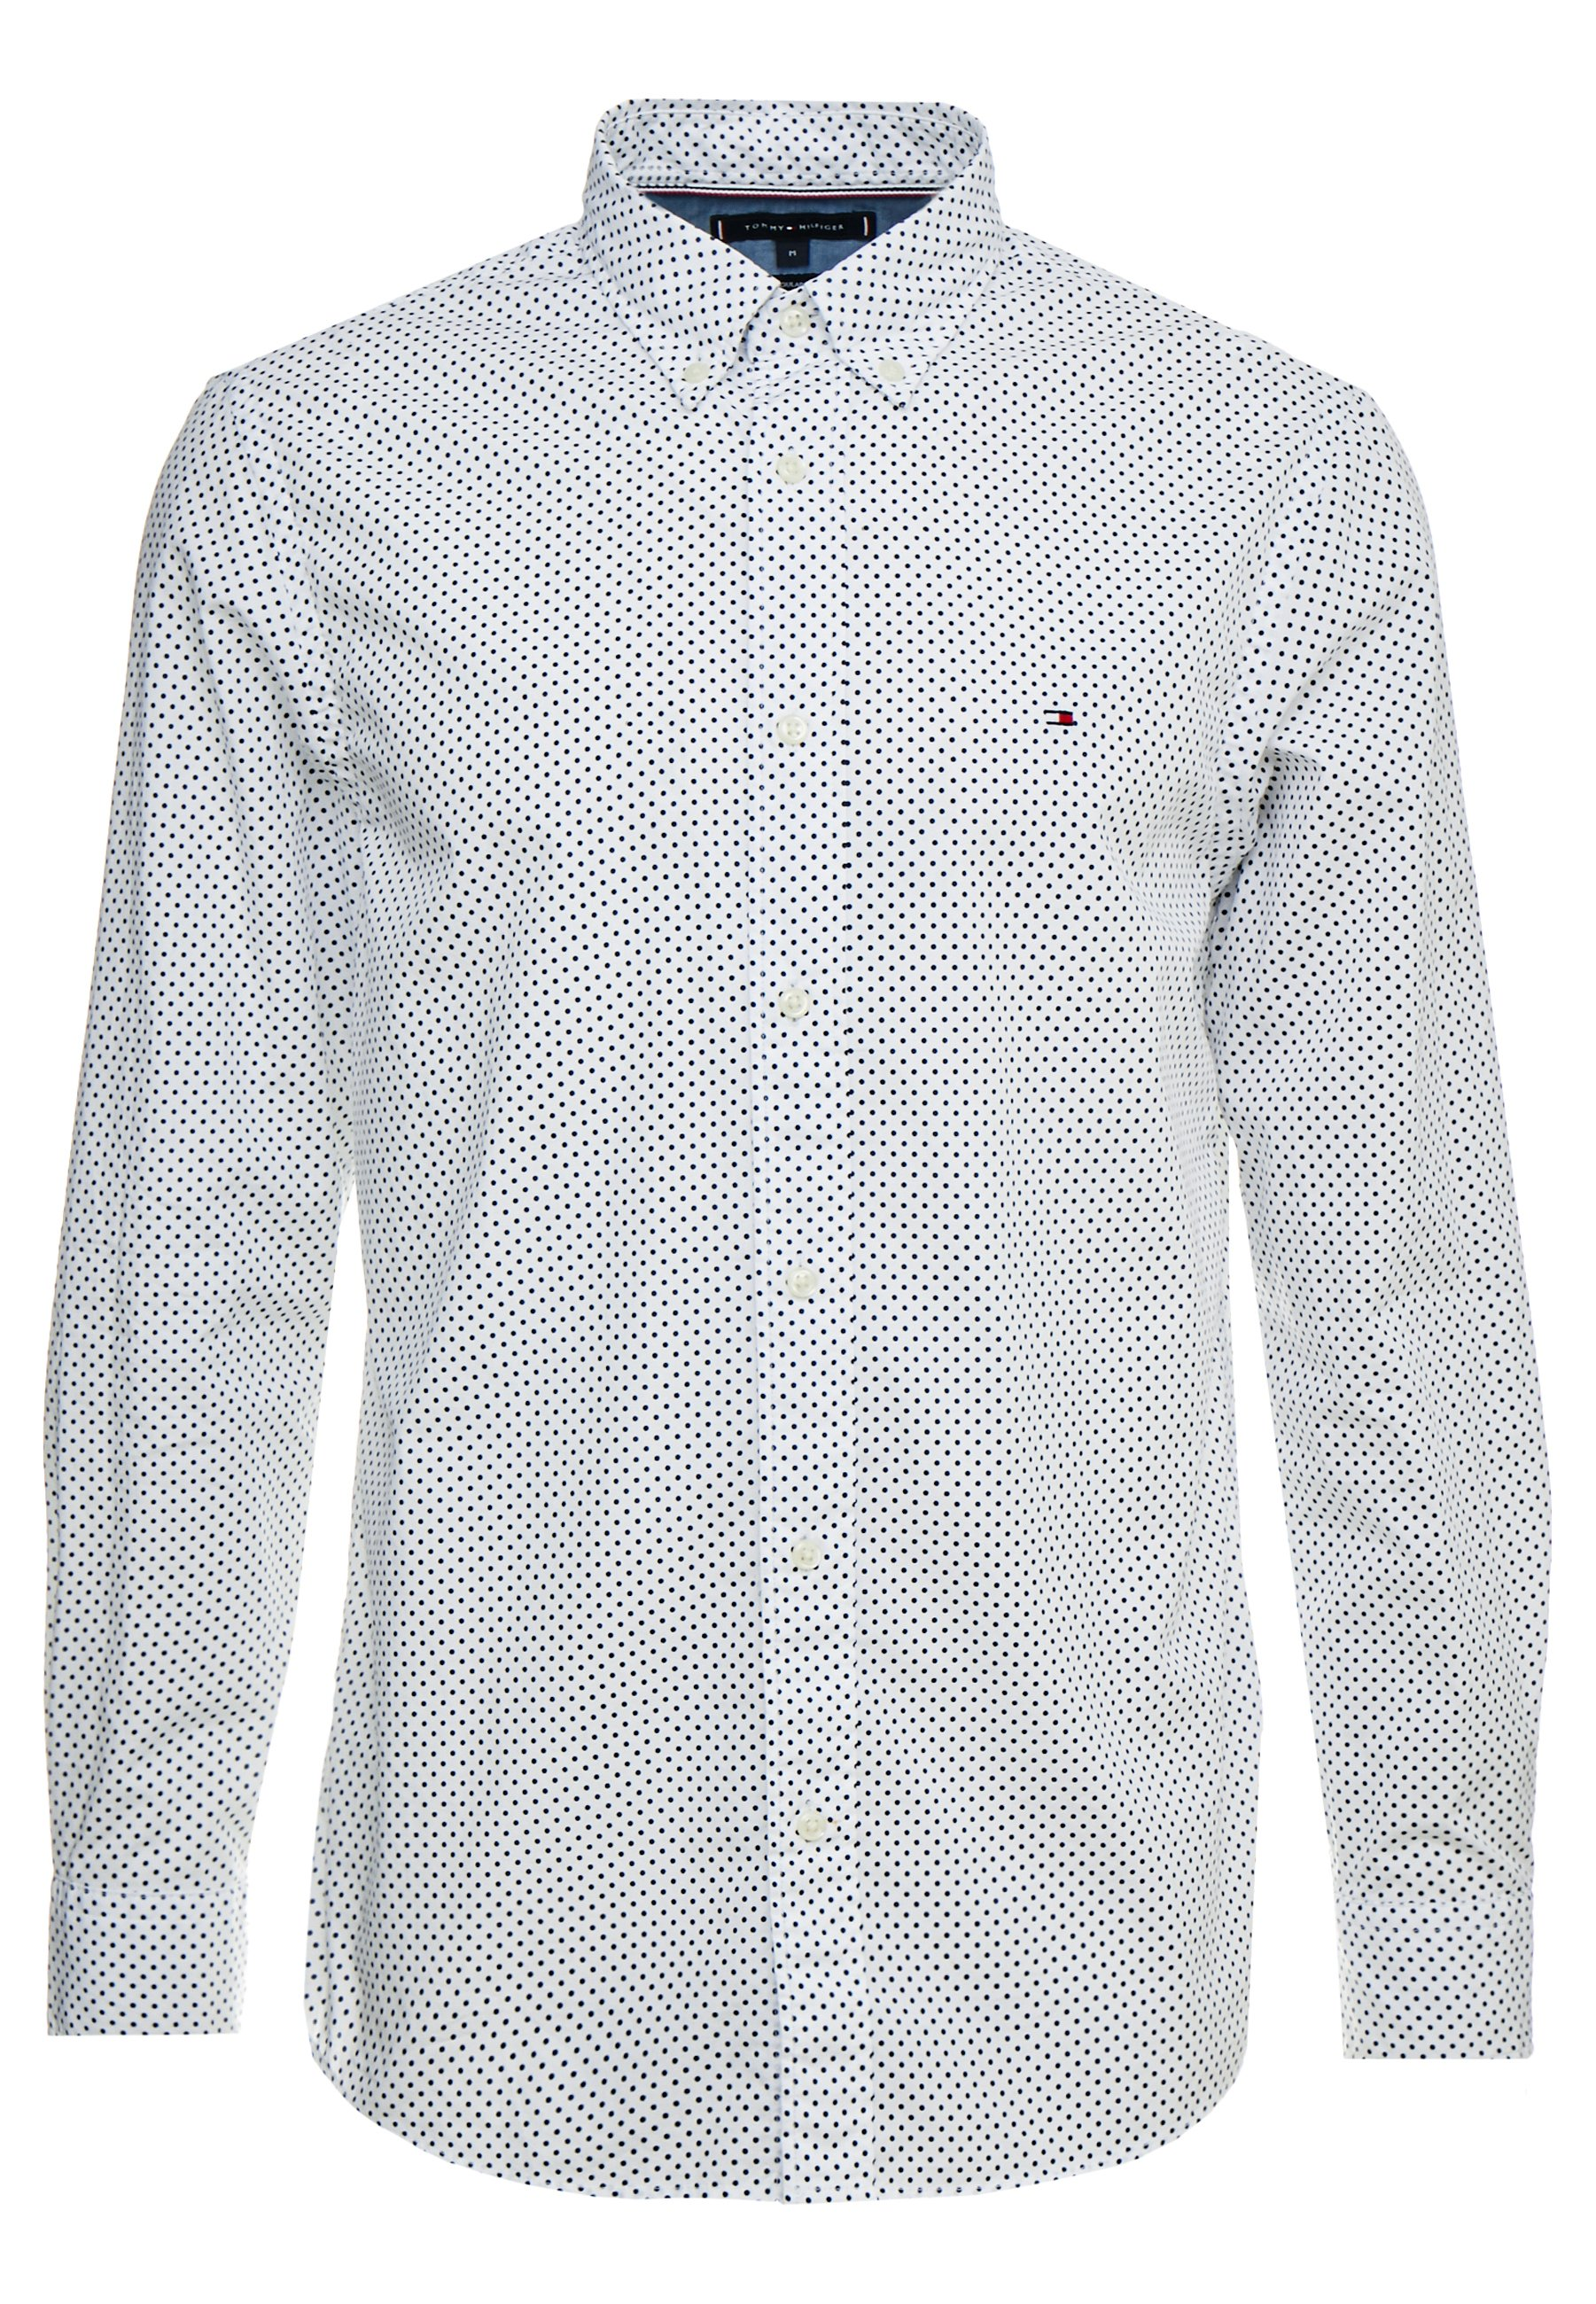 Tommy Hilfiger Dot Regular Fit - Skjorta White